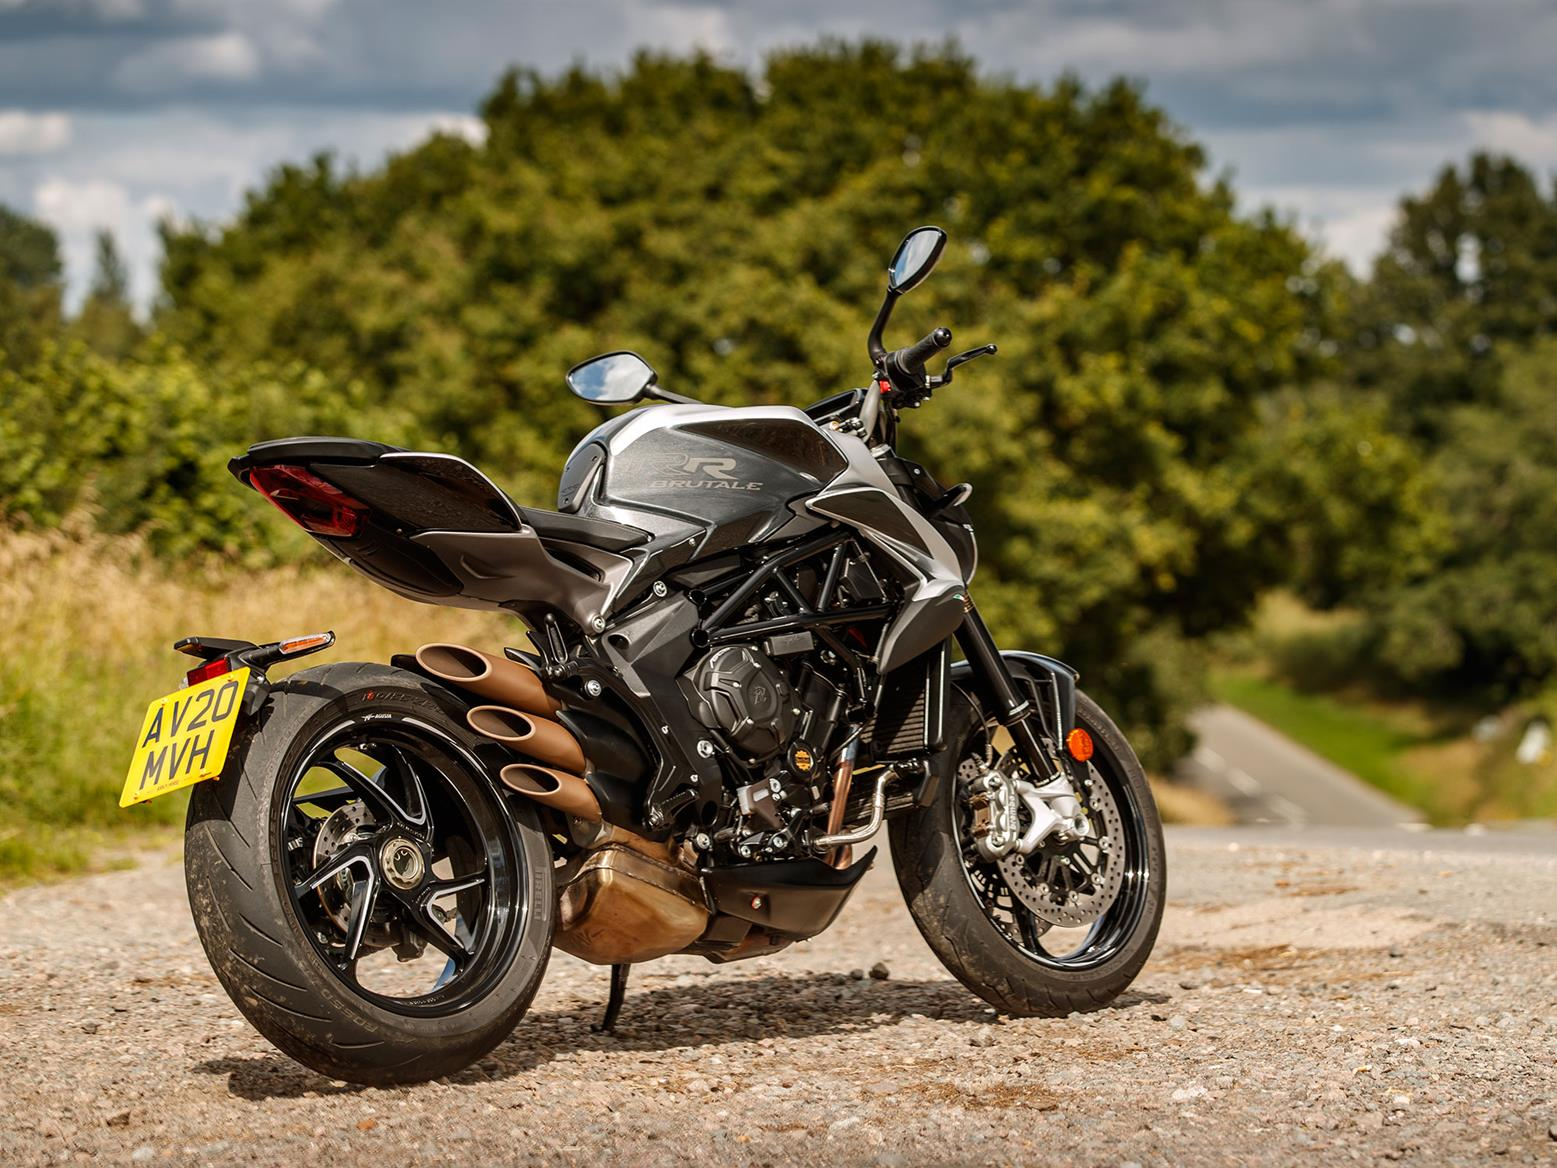 Mv Agusta Brutale 800rr 2020 On Review Mcn